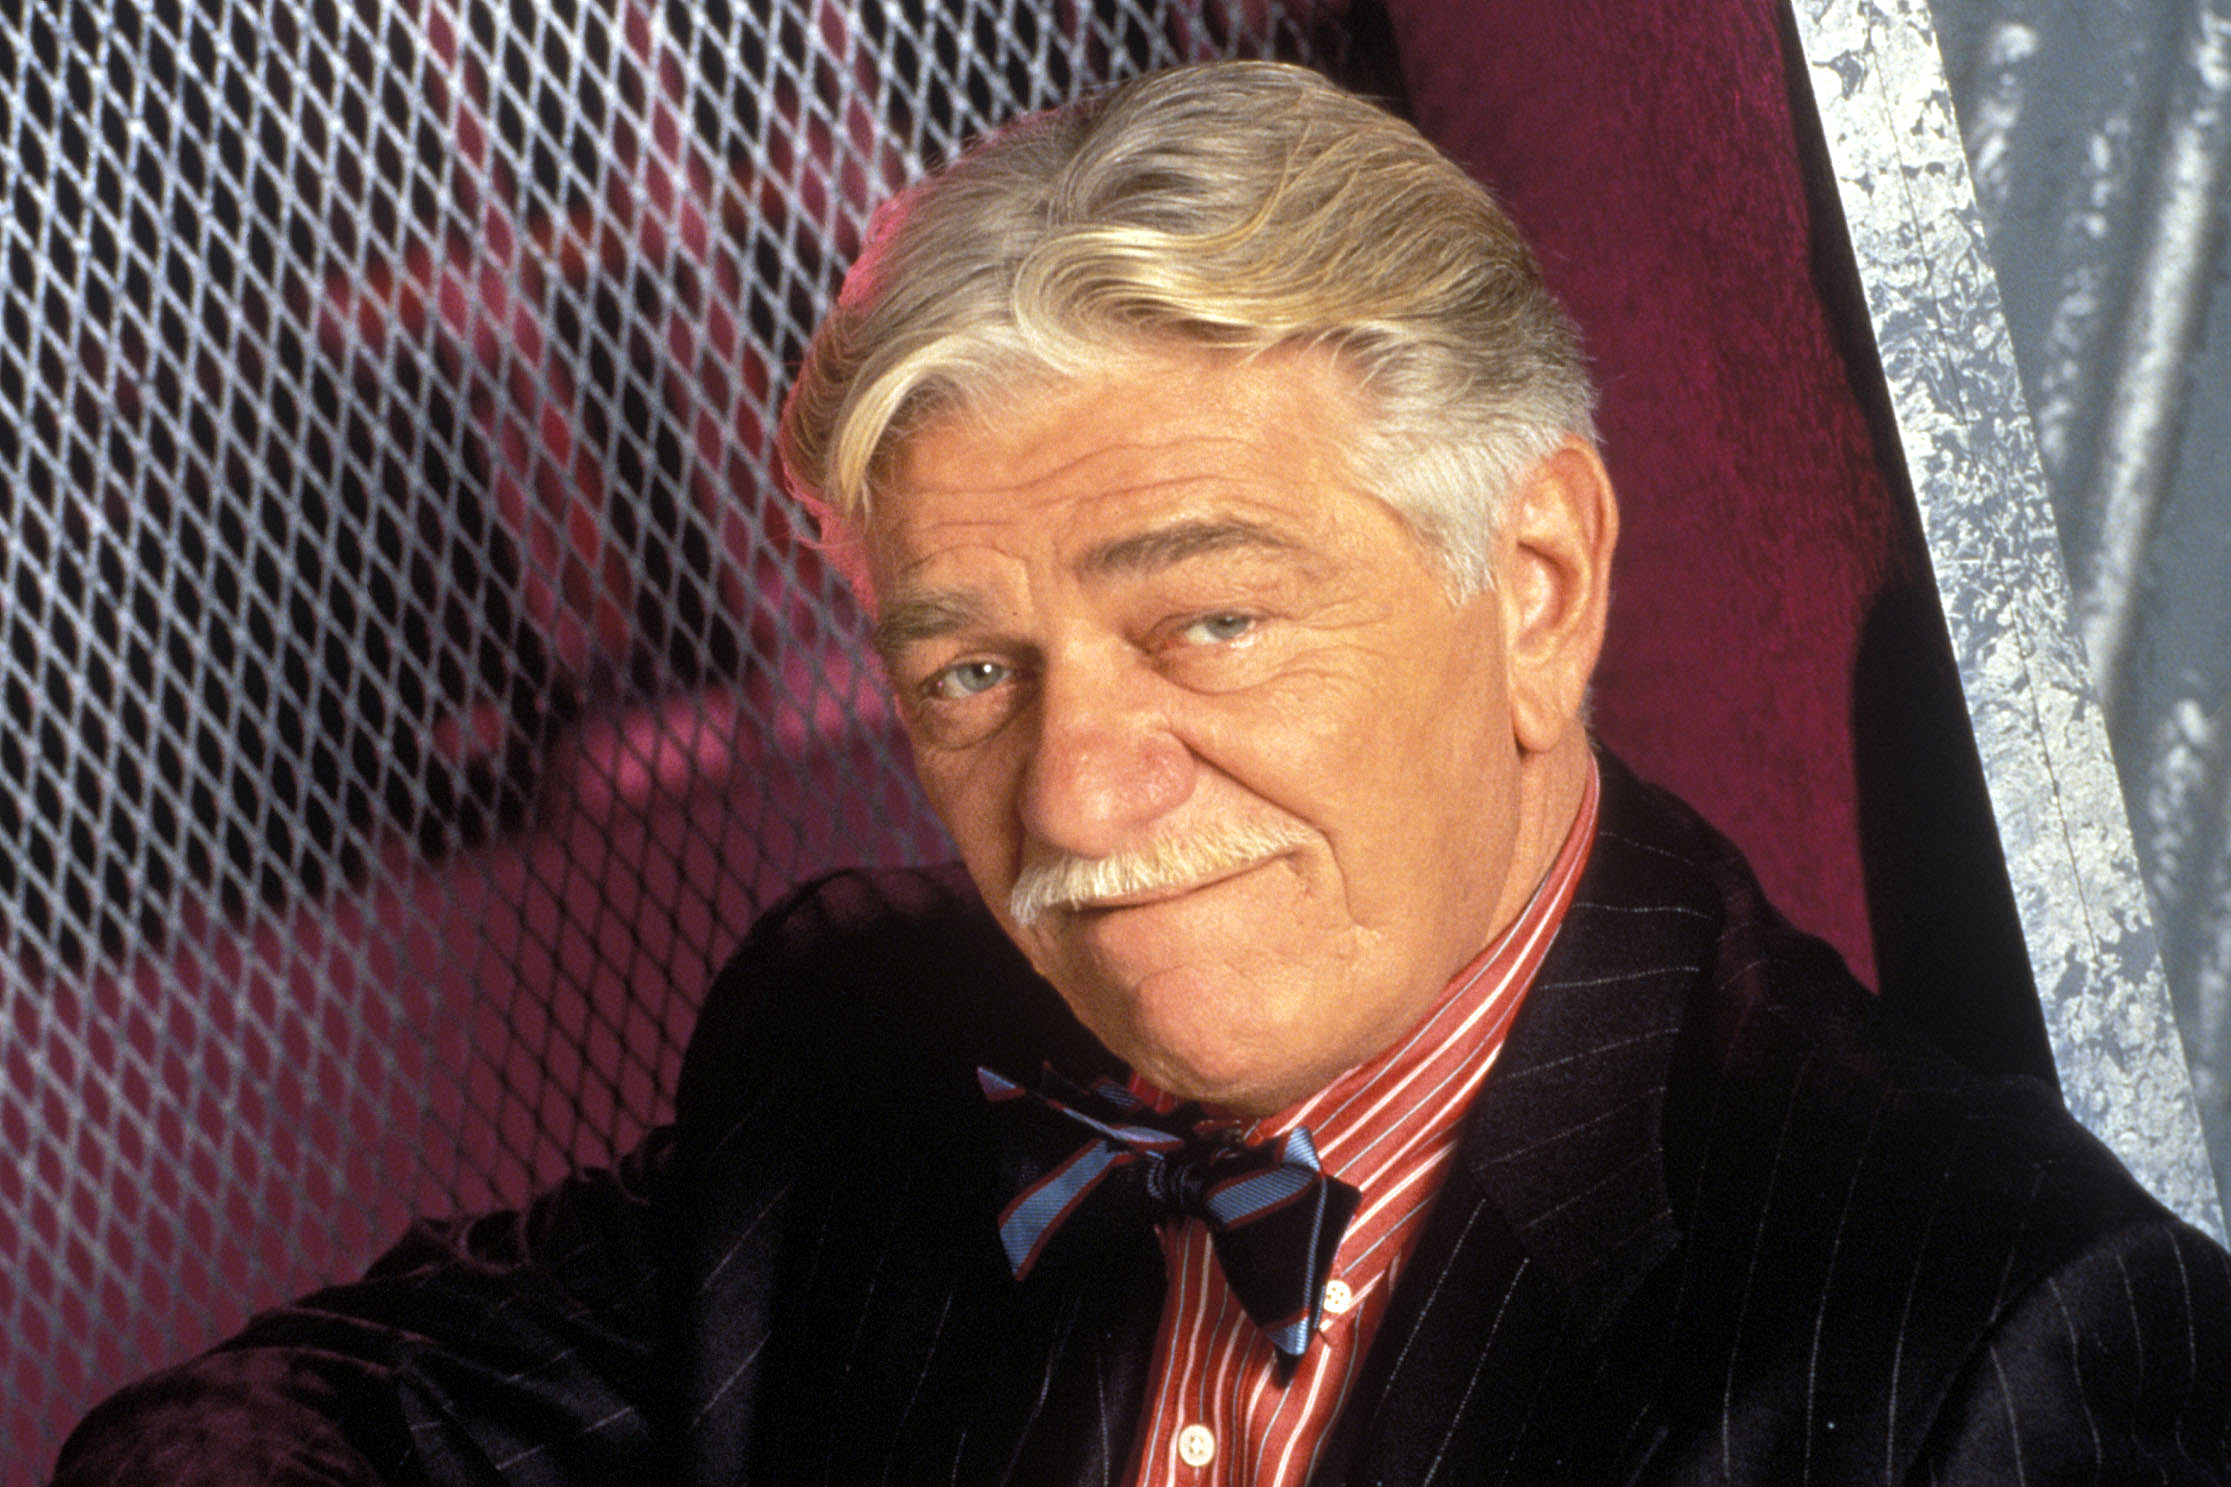 IMG SEYMOUR CASSEL, American Actor